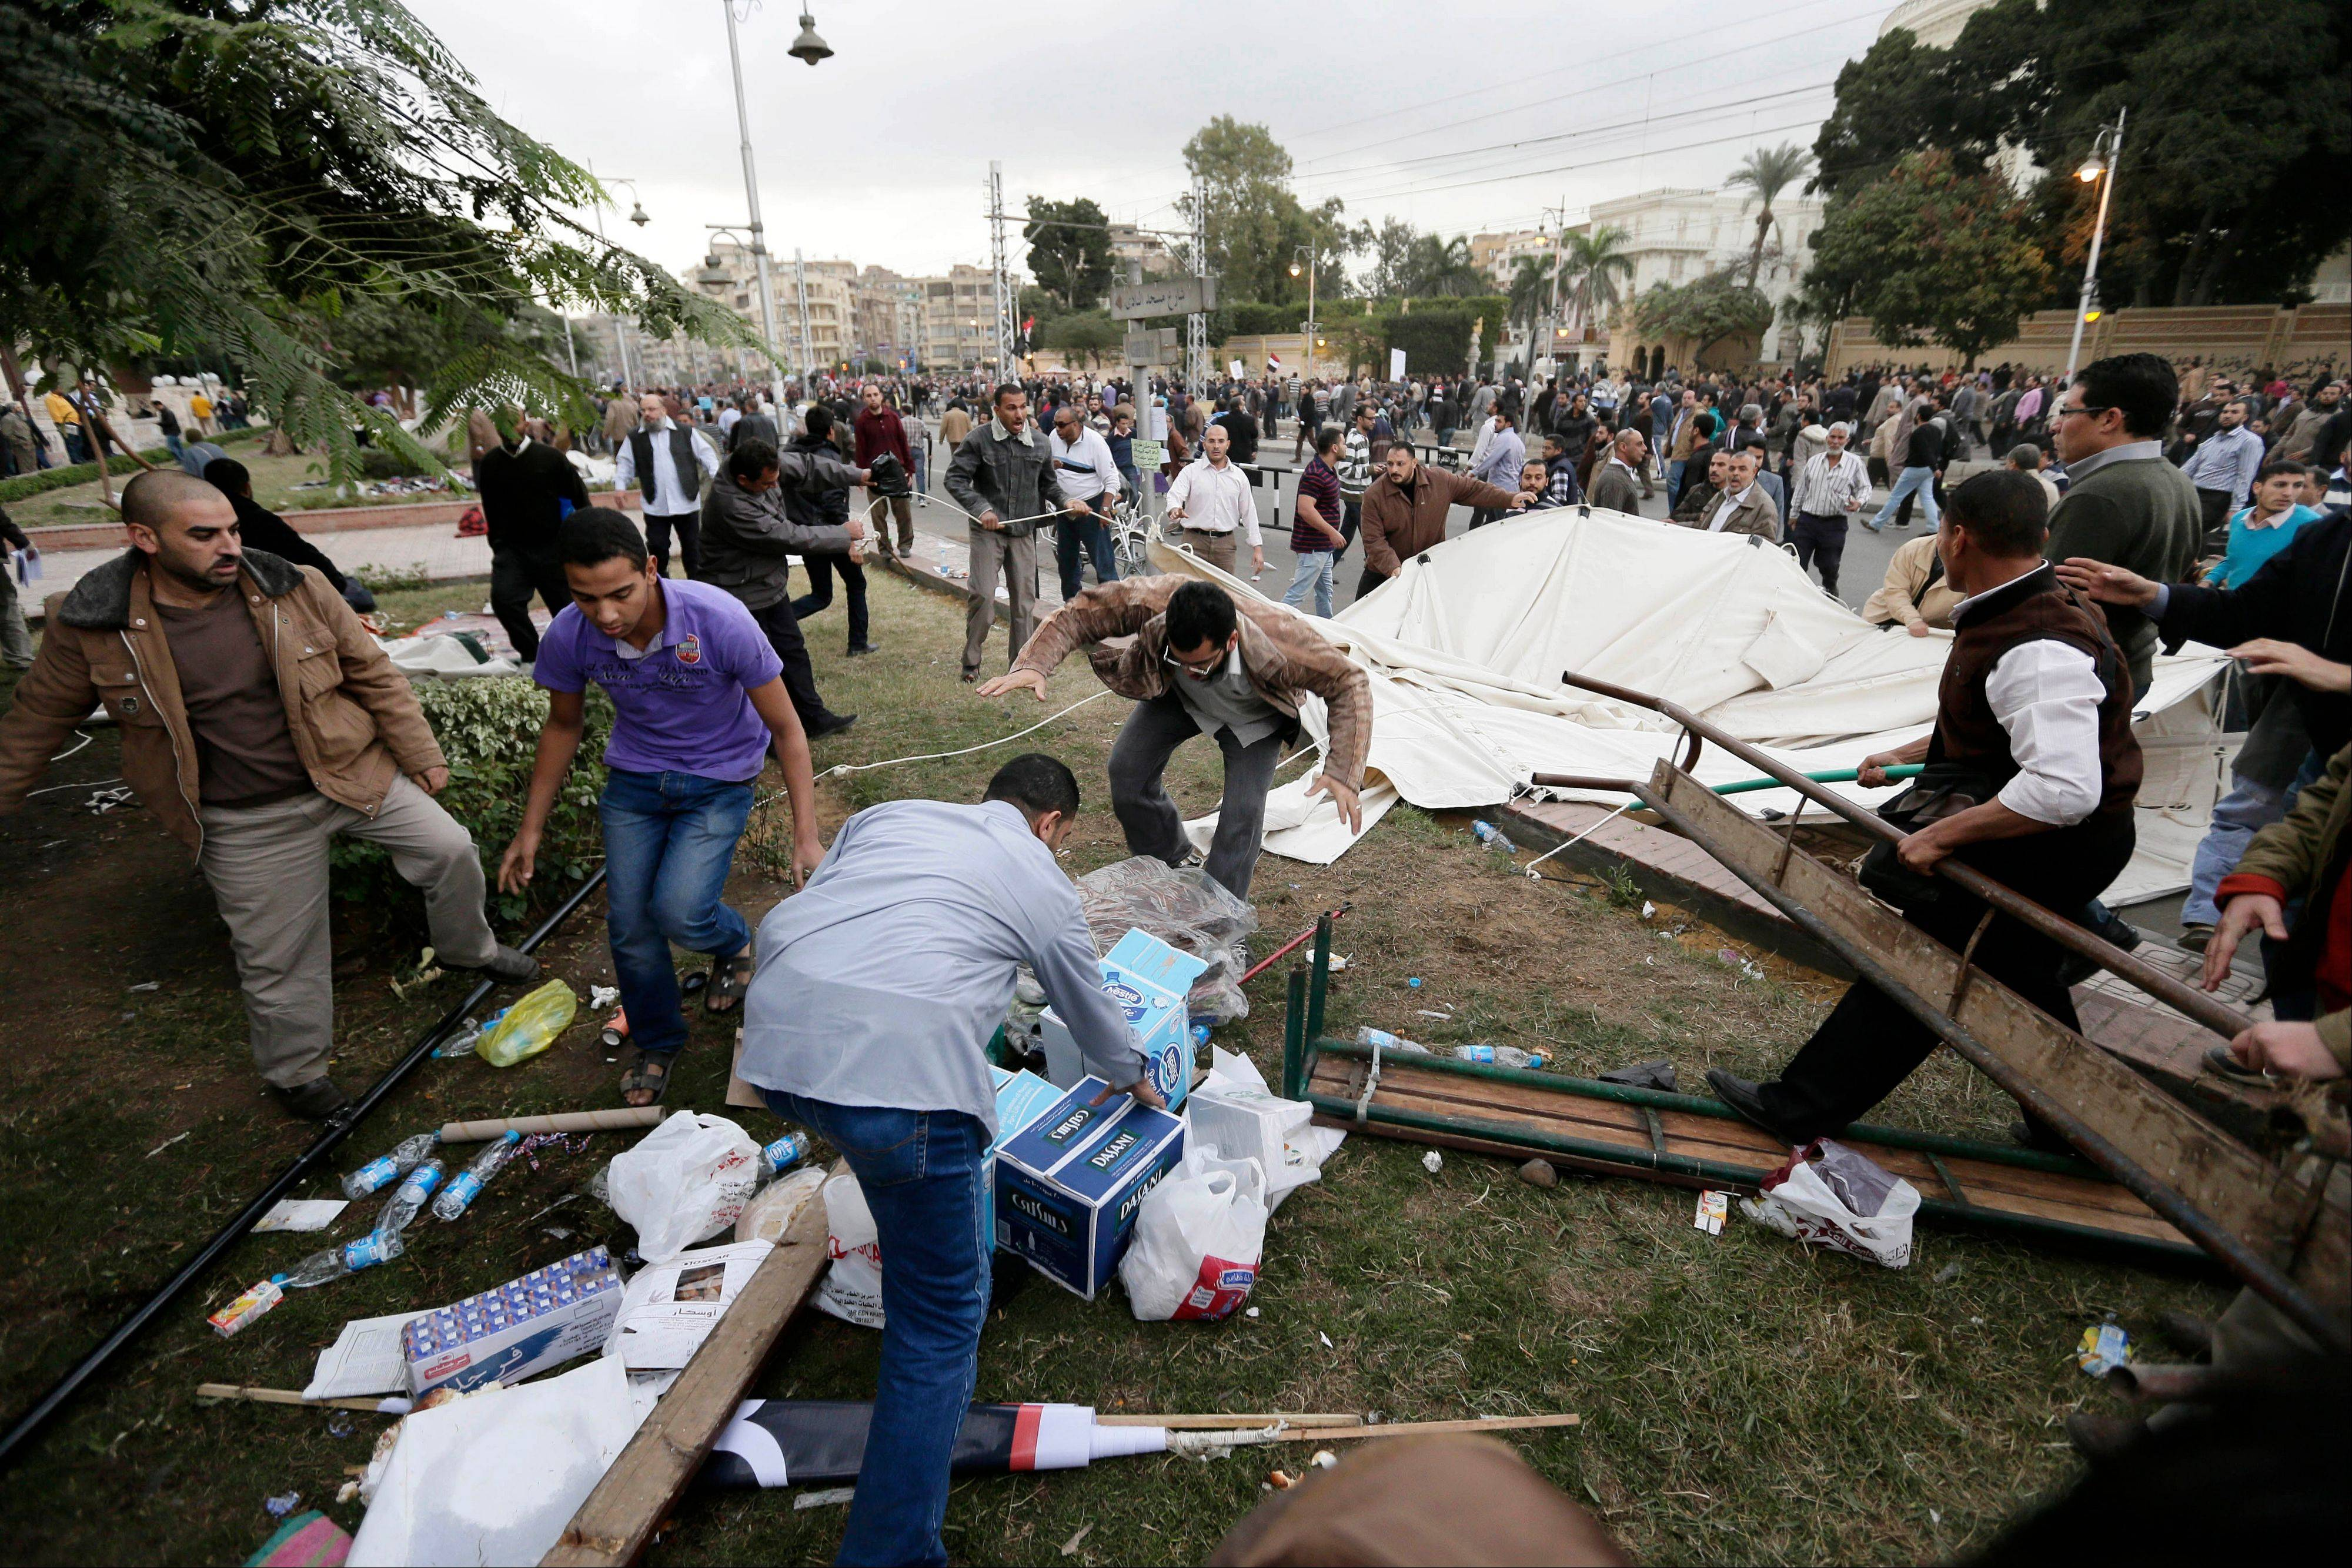 Supporters of Egyptian President Mohammed Morsi remove tents of opposition protesters outside the presidential palace in Cairo Wednesday. Supporters of Morsi and opponents clashed outside the presidential palace.